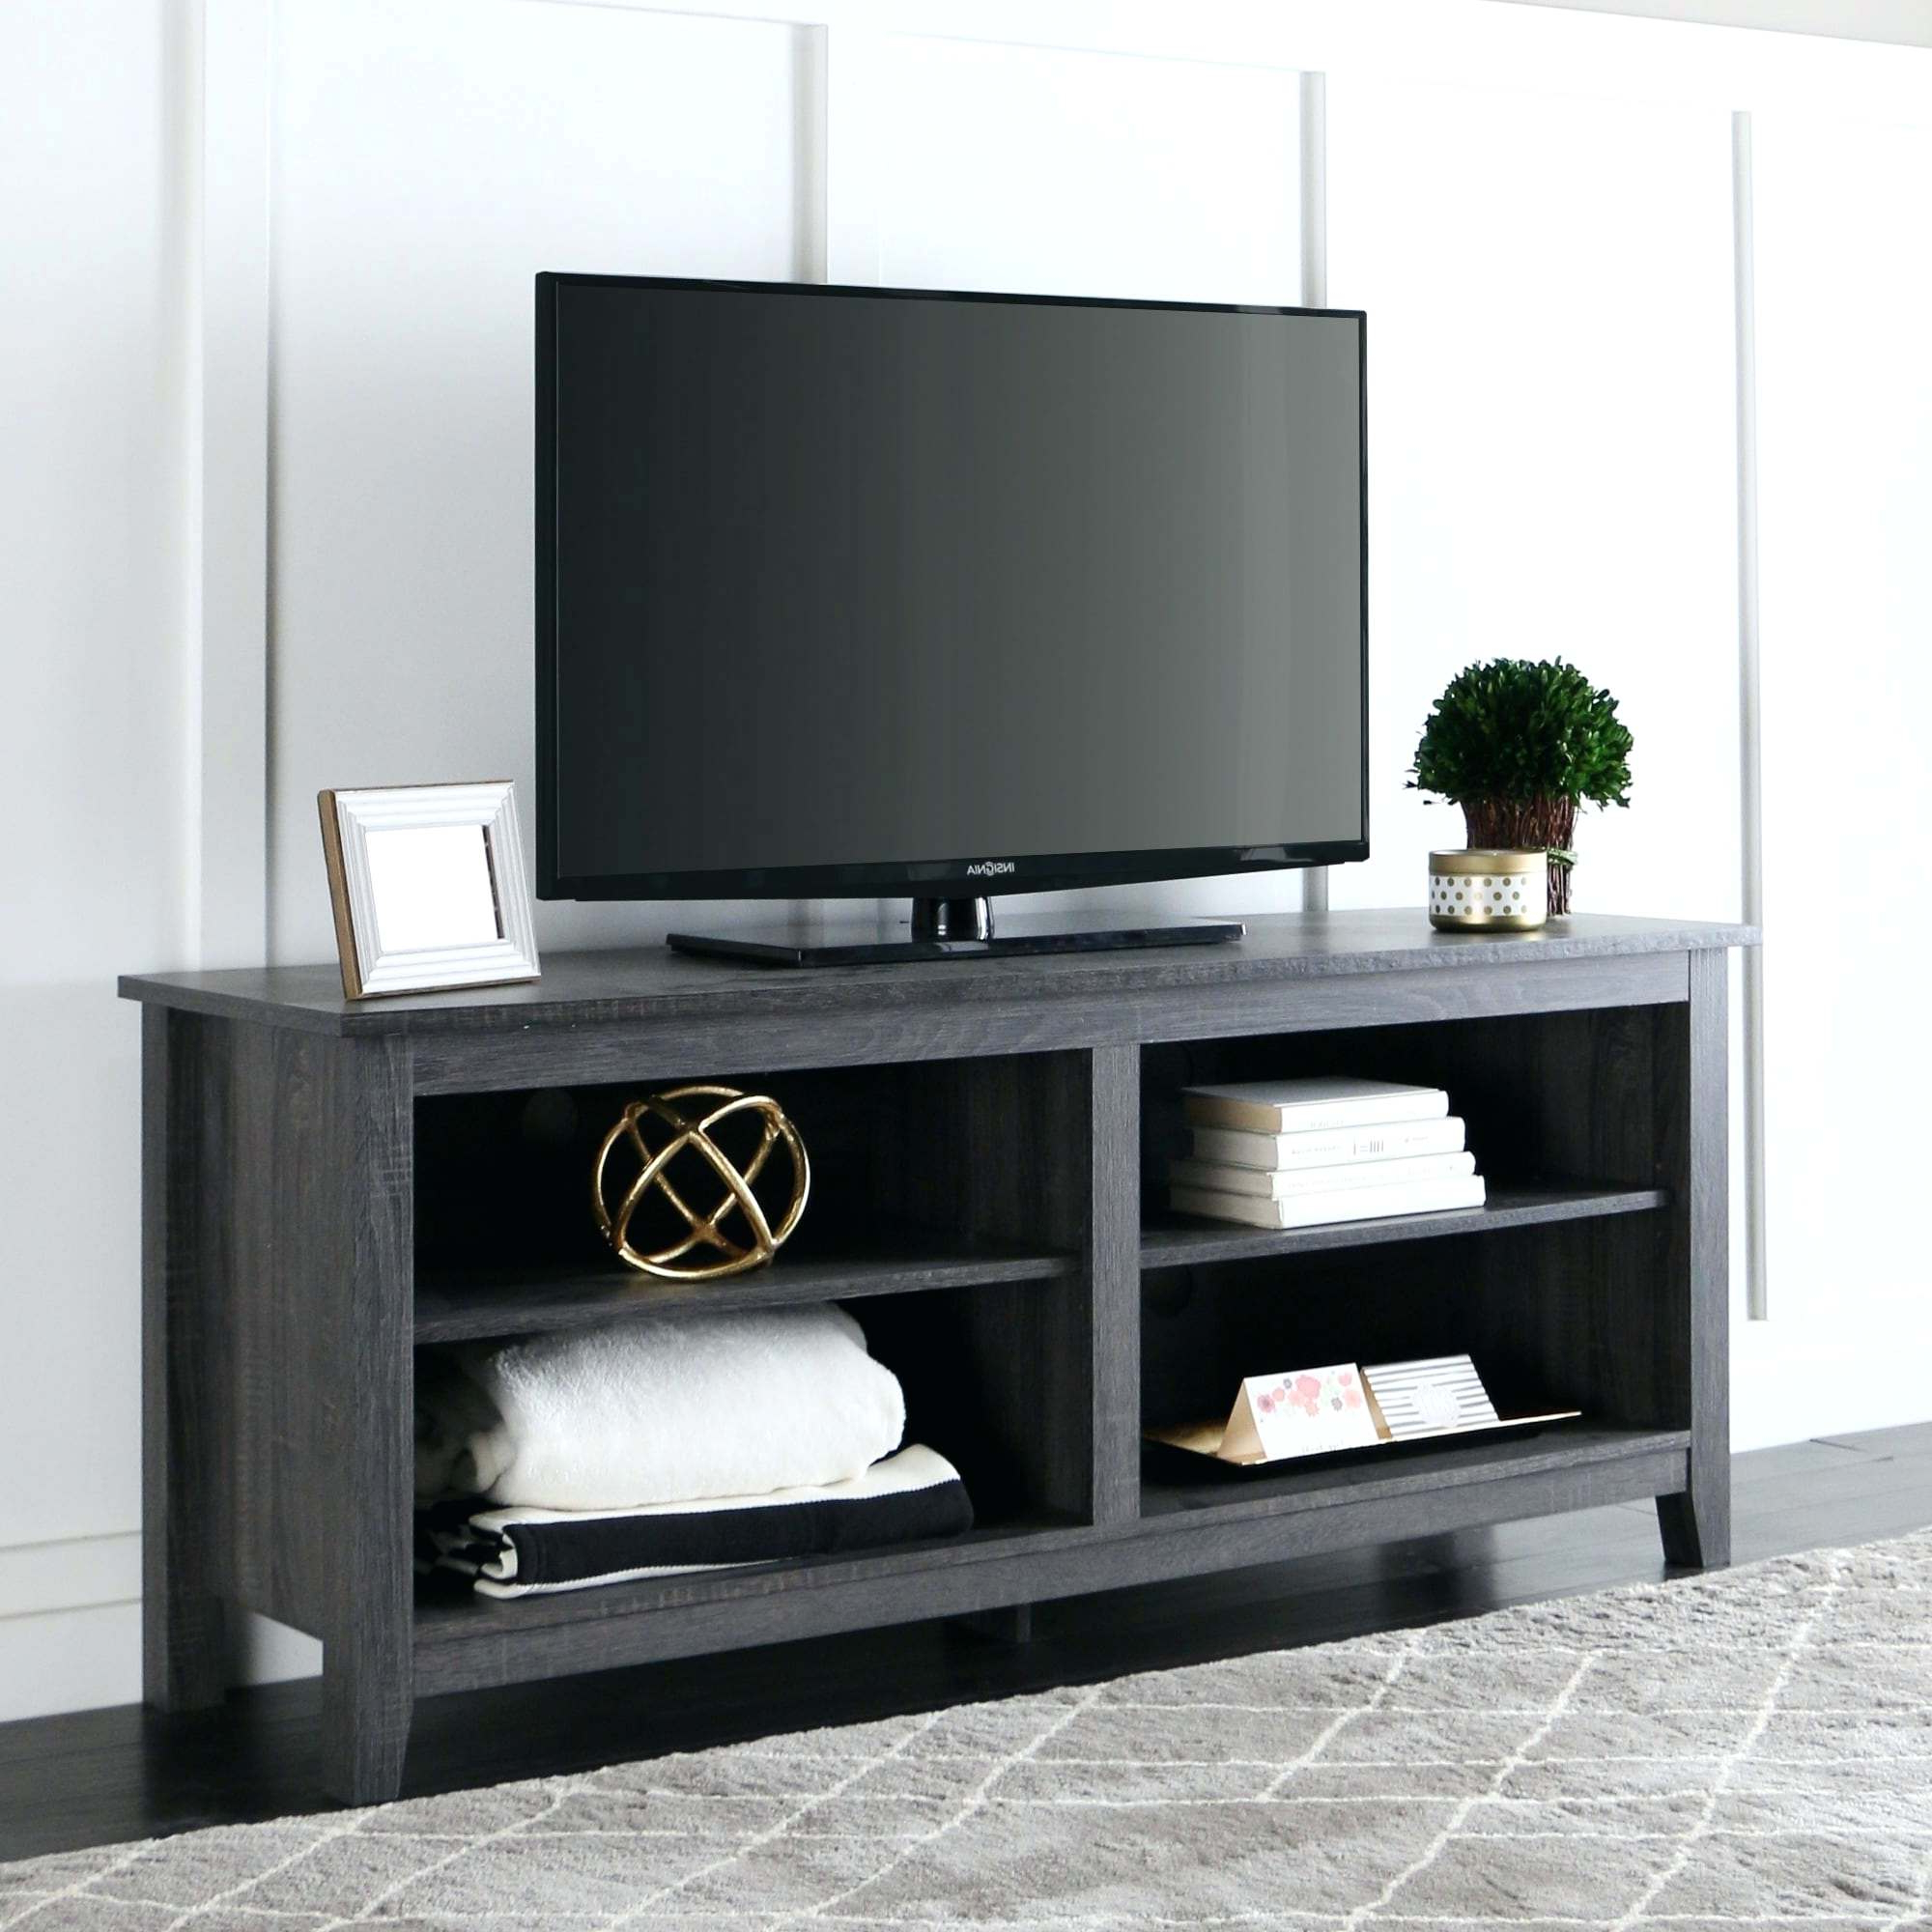 Sinclair Tv Console Ii Chest Of Drawers Sinclair White 64 Inch Tv In Sinclair Grey 64 Inch Tv Stands (View 8 of 20)